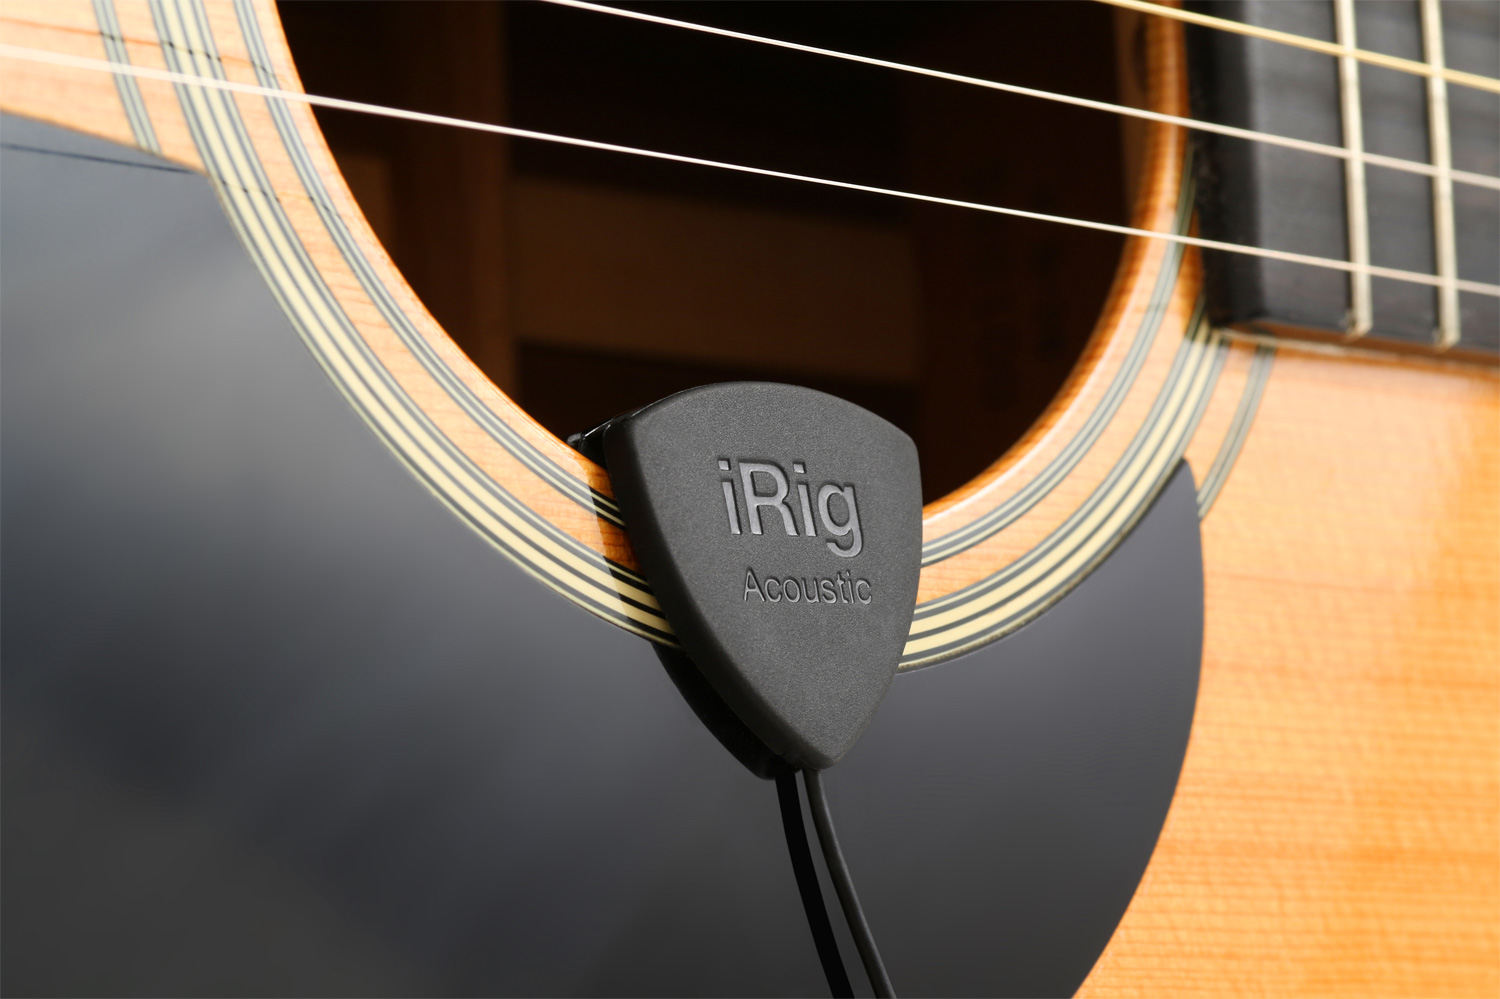 Ik Multimedia Irig Acoustic Ban Leong Technologies Limited Pickup Microphone Wire Amplifier Speaker For Guitar Black Simply Put Delivers A Pure And Full Representation Of An Guitars Tonal Characteristics